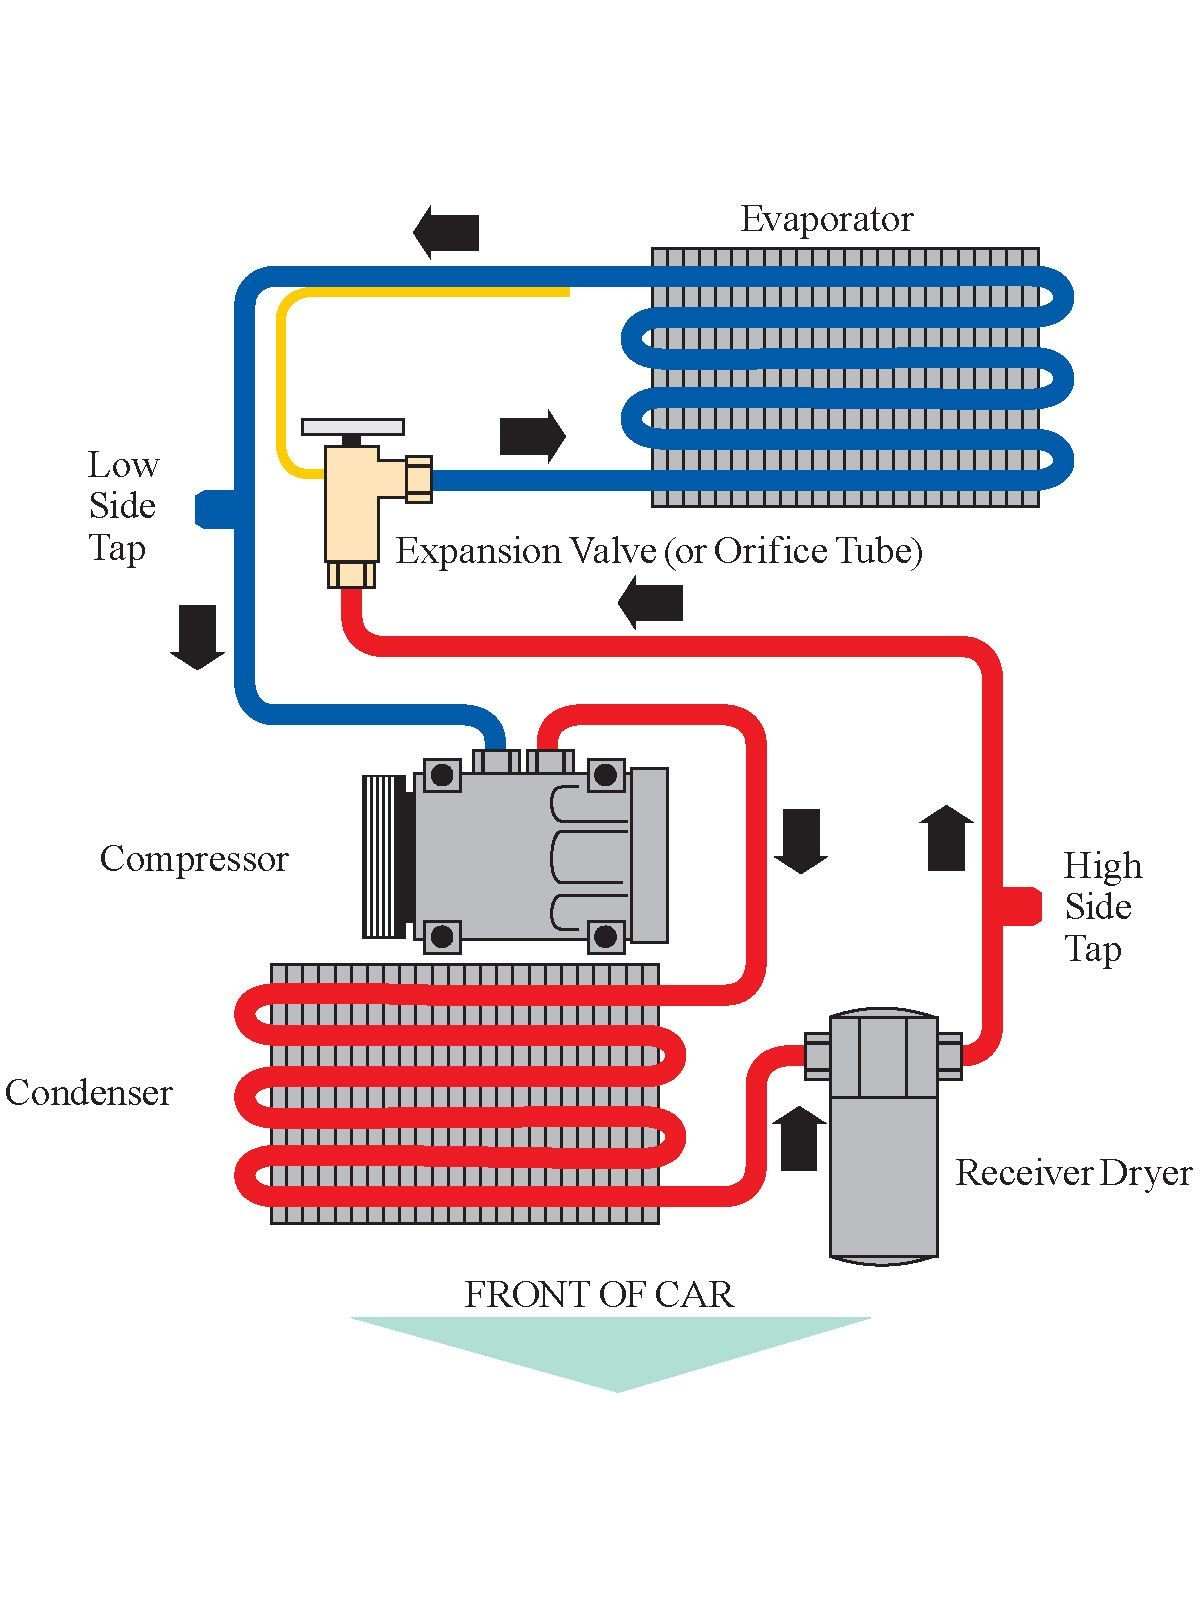 Ac System Diagram Car Ac System Diagram before You Call A Ac Repair Man Visit My Blog for Of Ac System Diagram Car